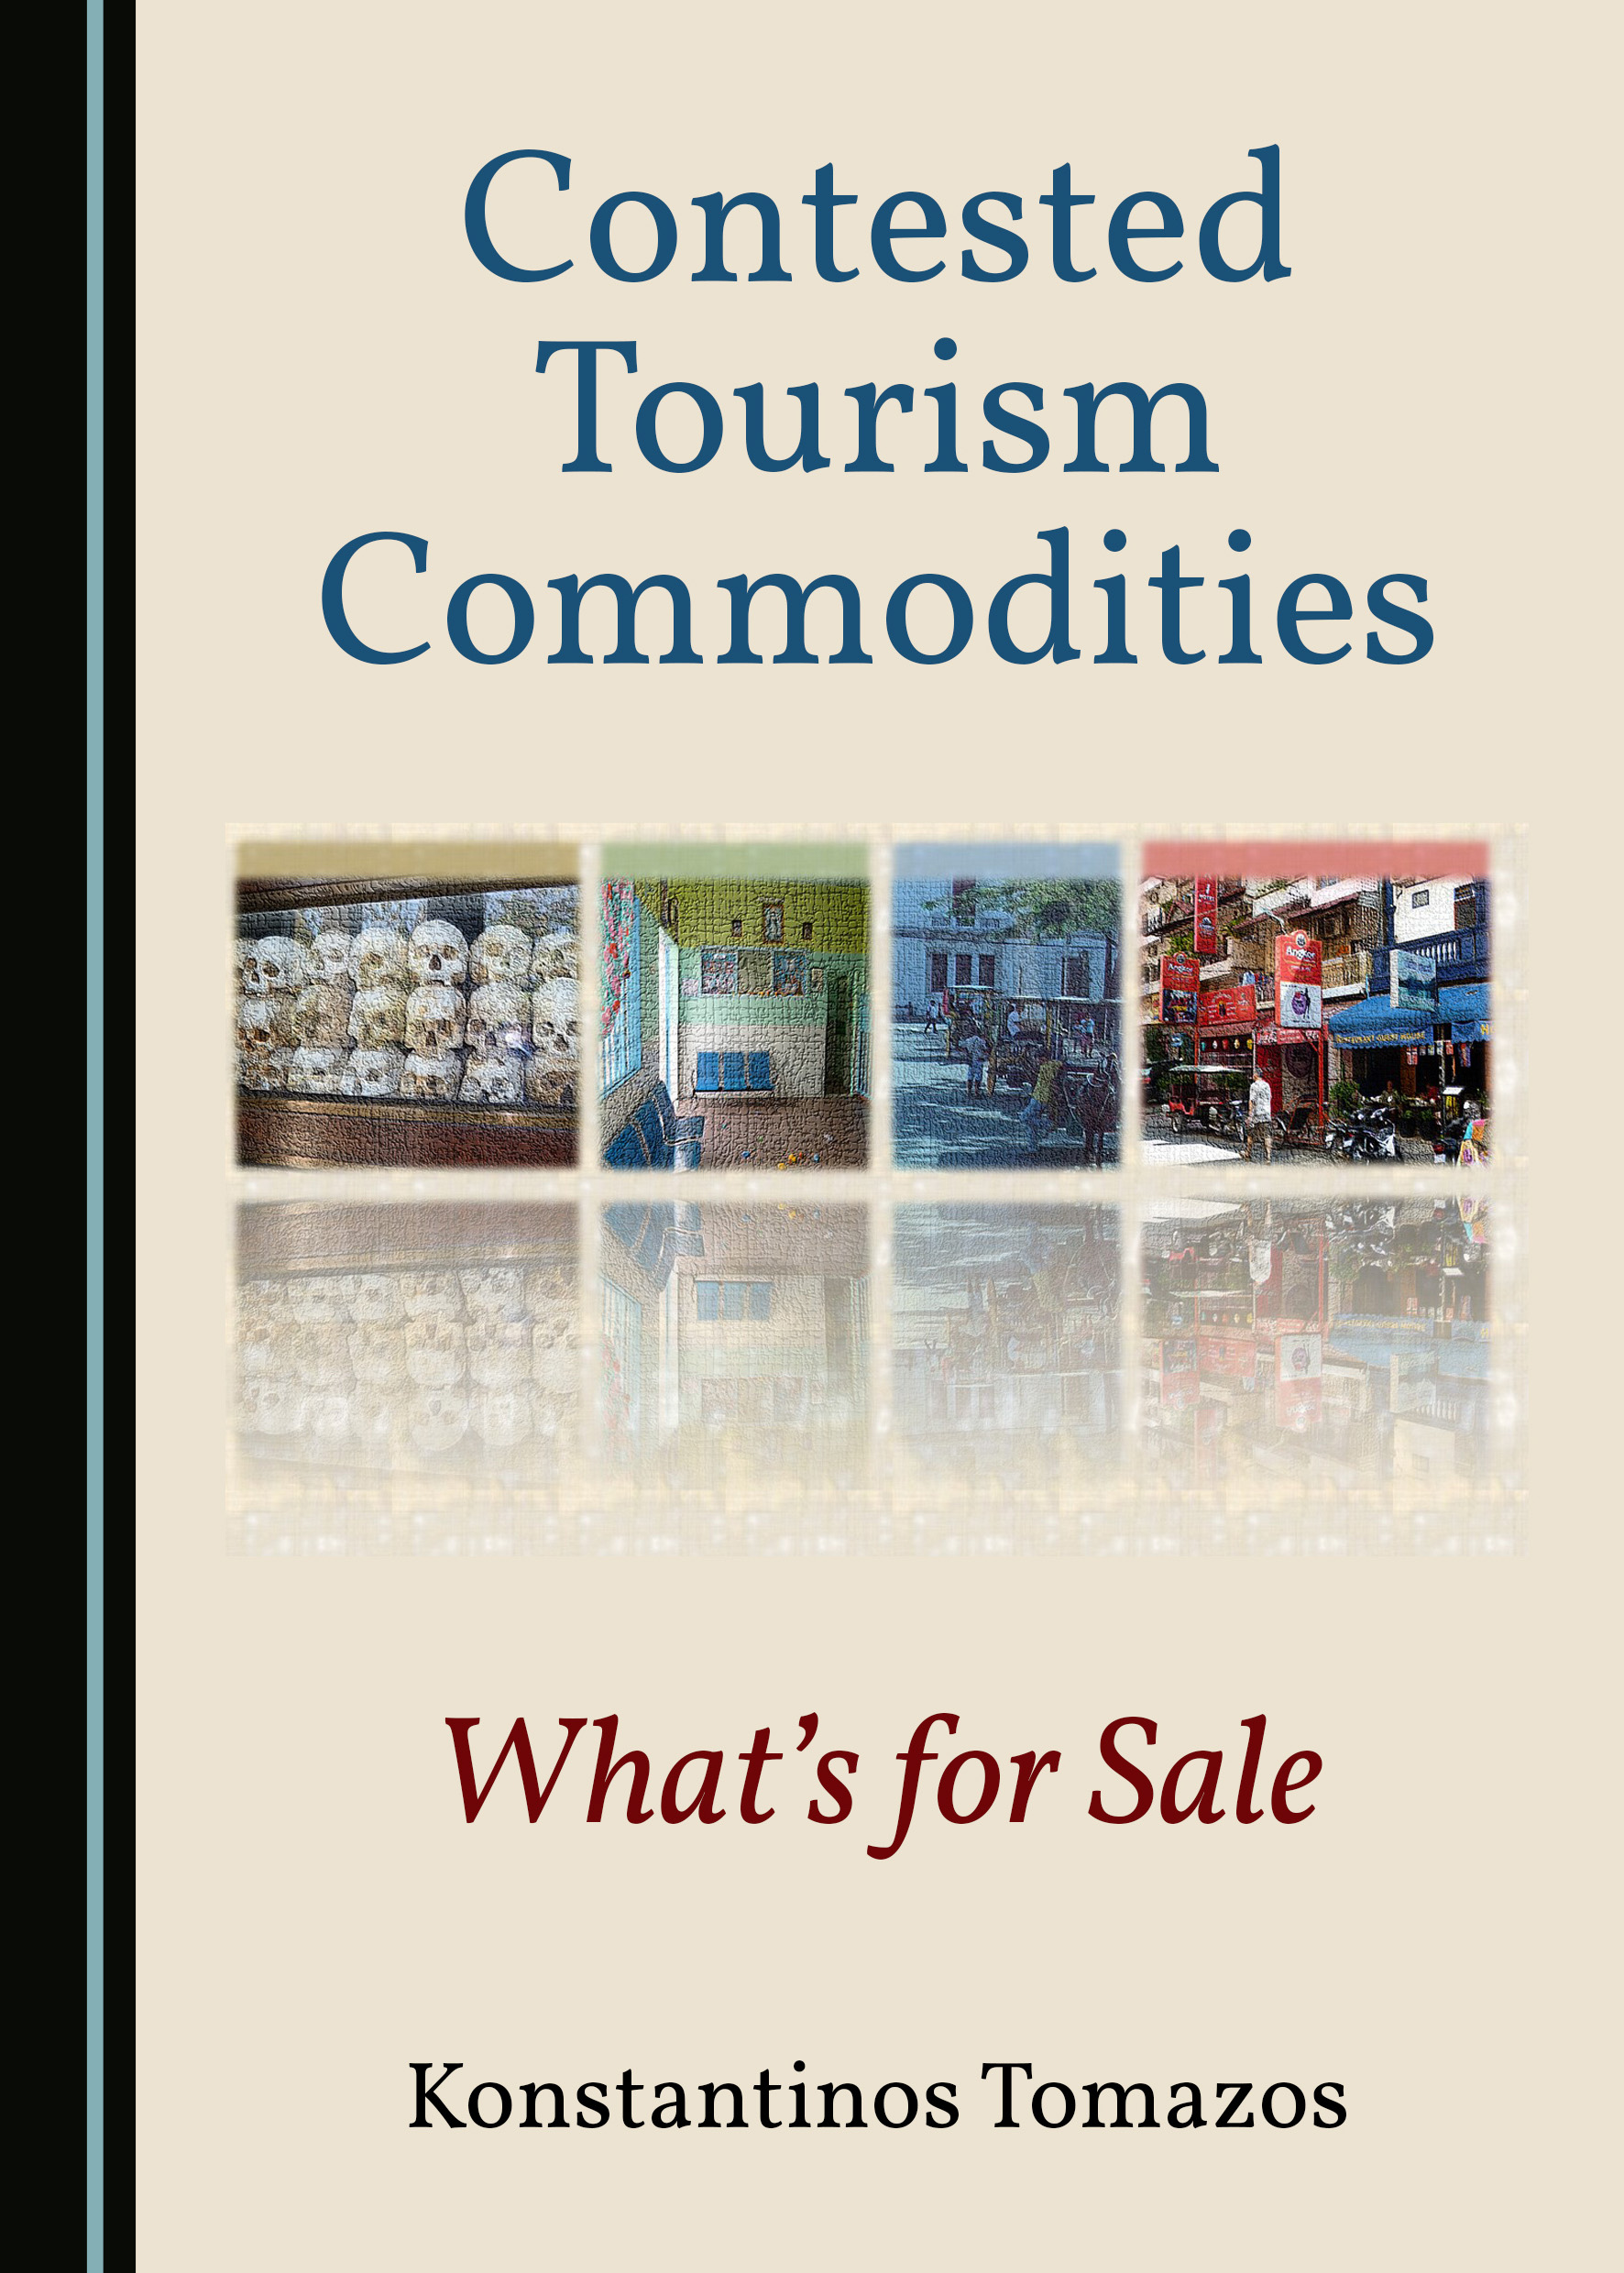 Contested Tourism Commodities: What's for Sale